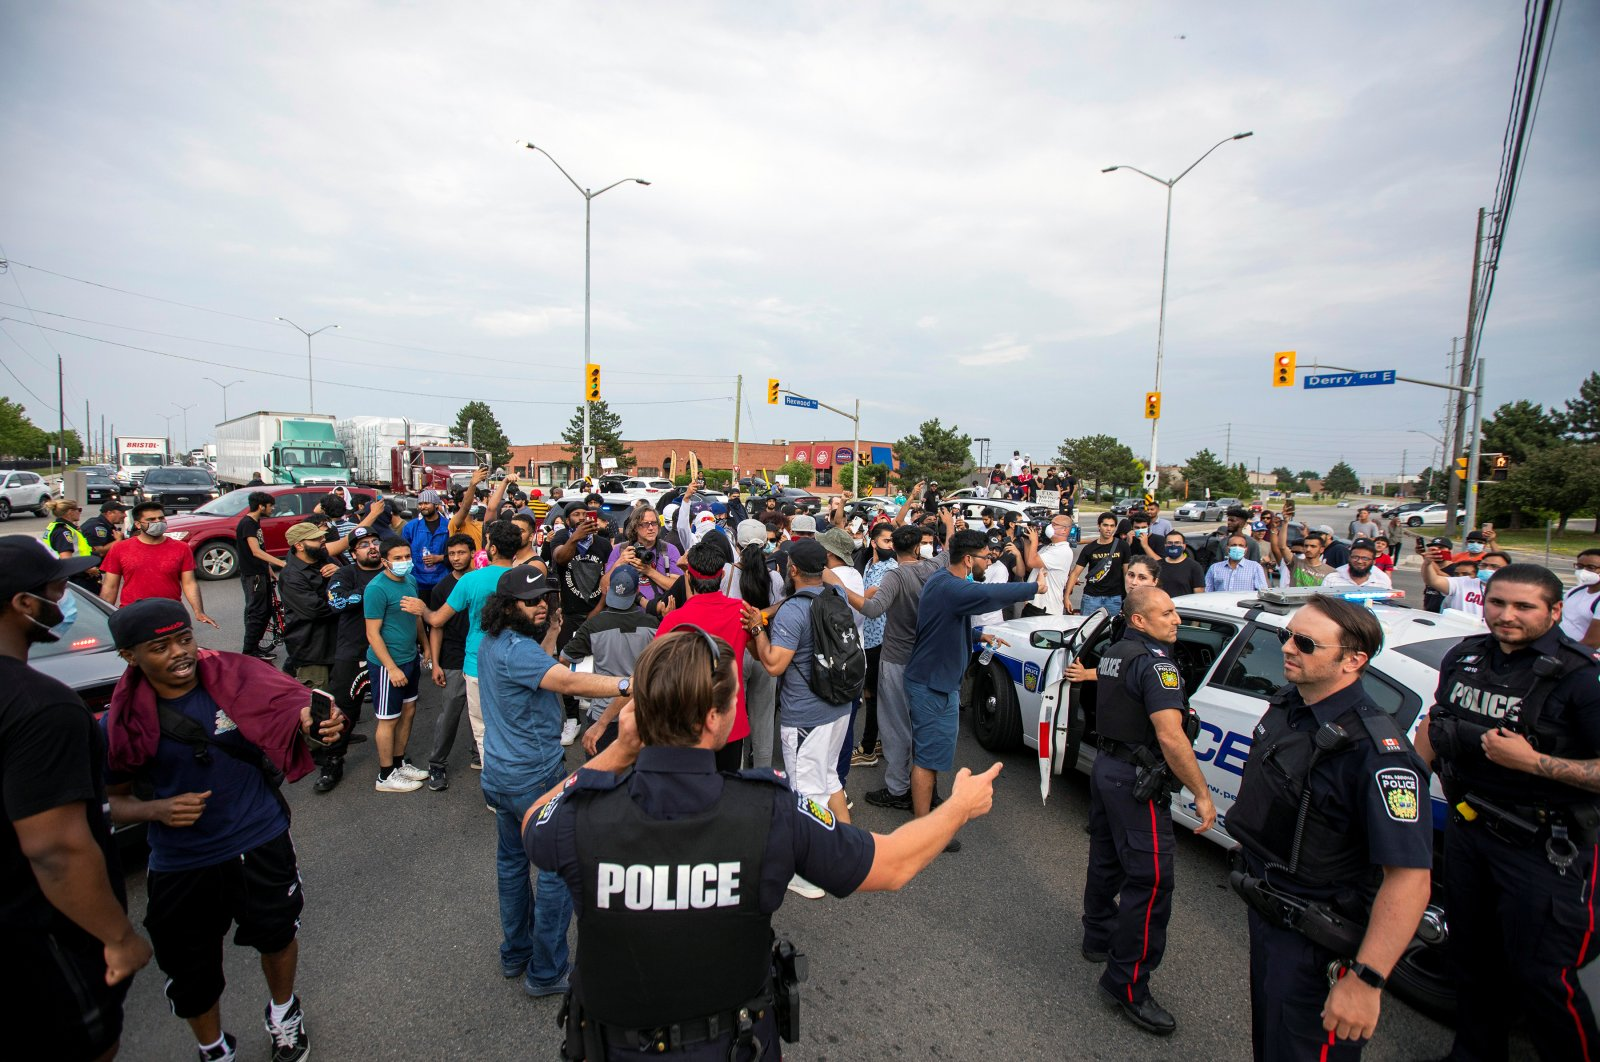 Protesters vent at police while demonstrating against the June 20 fatal shooting by Peel Regional Police of Ejaz Ahmed Choudry, 62, who family members say suffered from schizophrenia, in Malton, Ontario, Canada, June 22, 2020. (Reuters Photo)